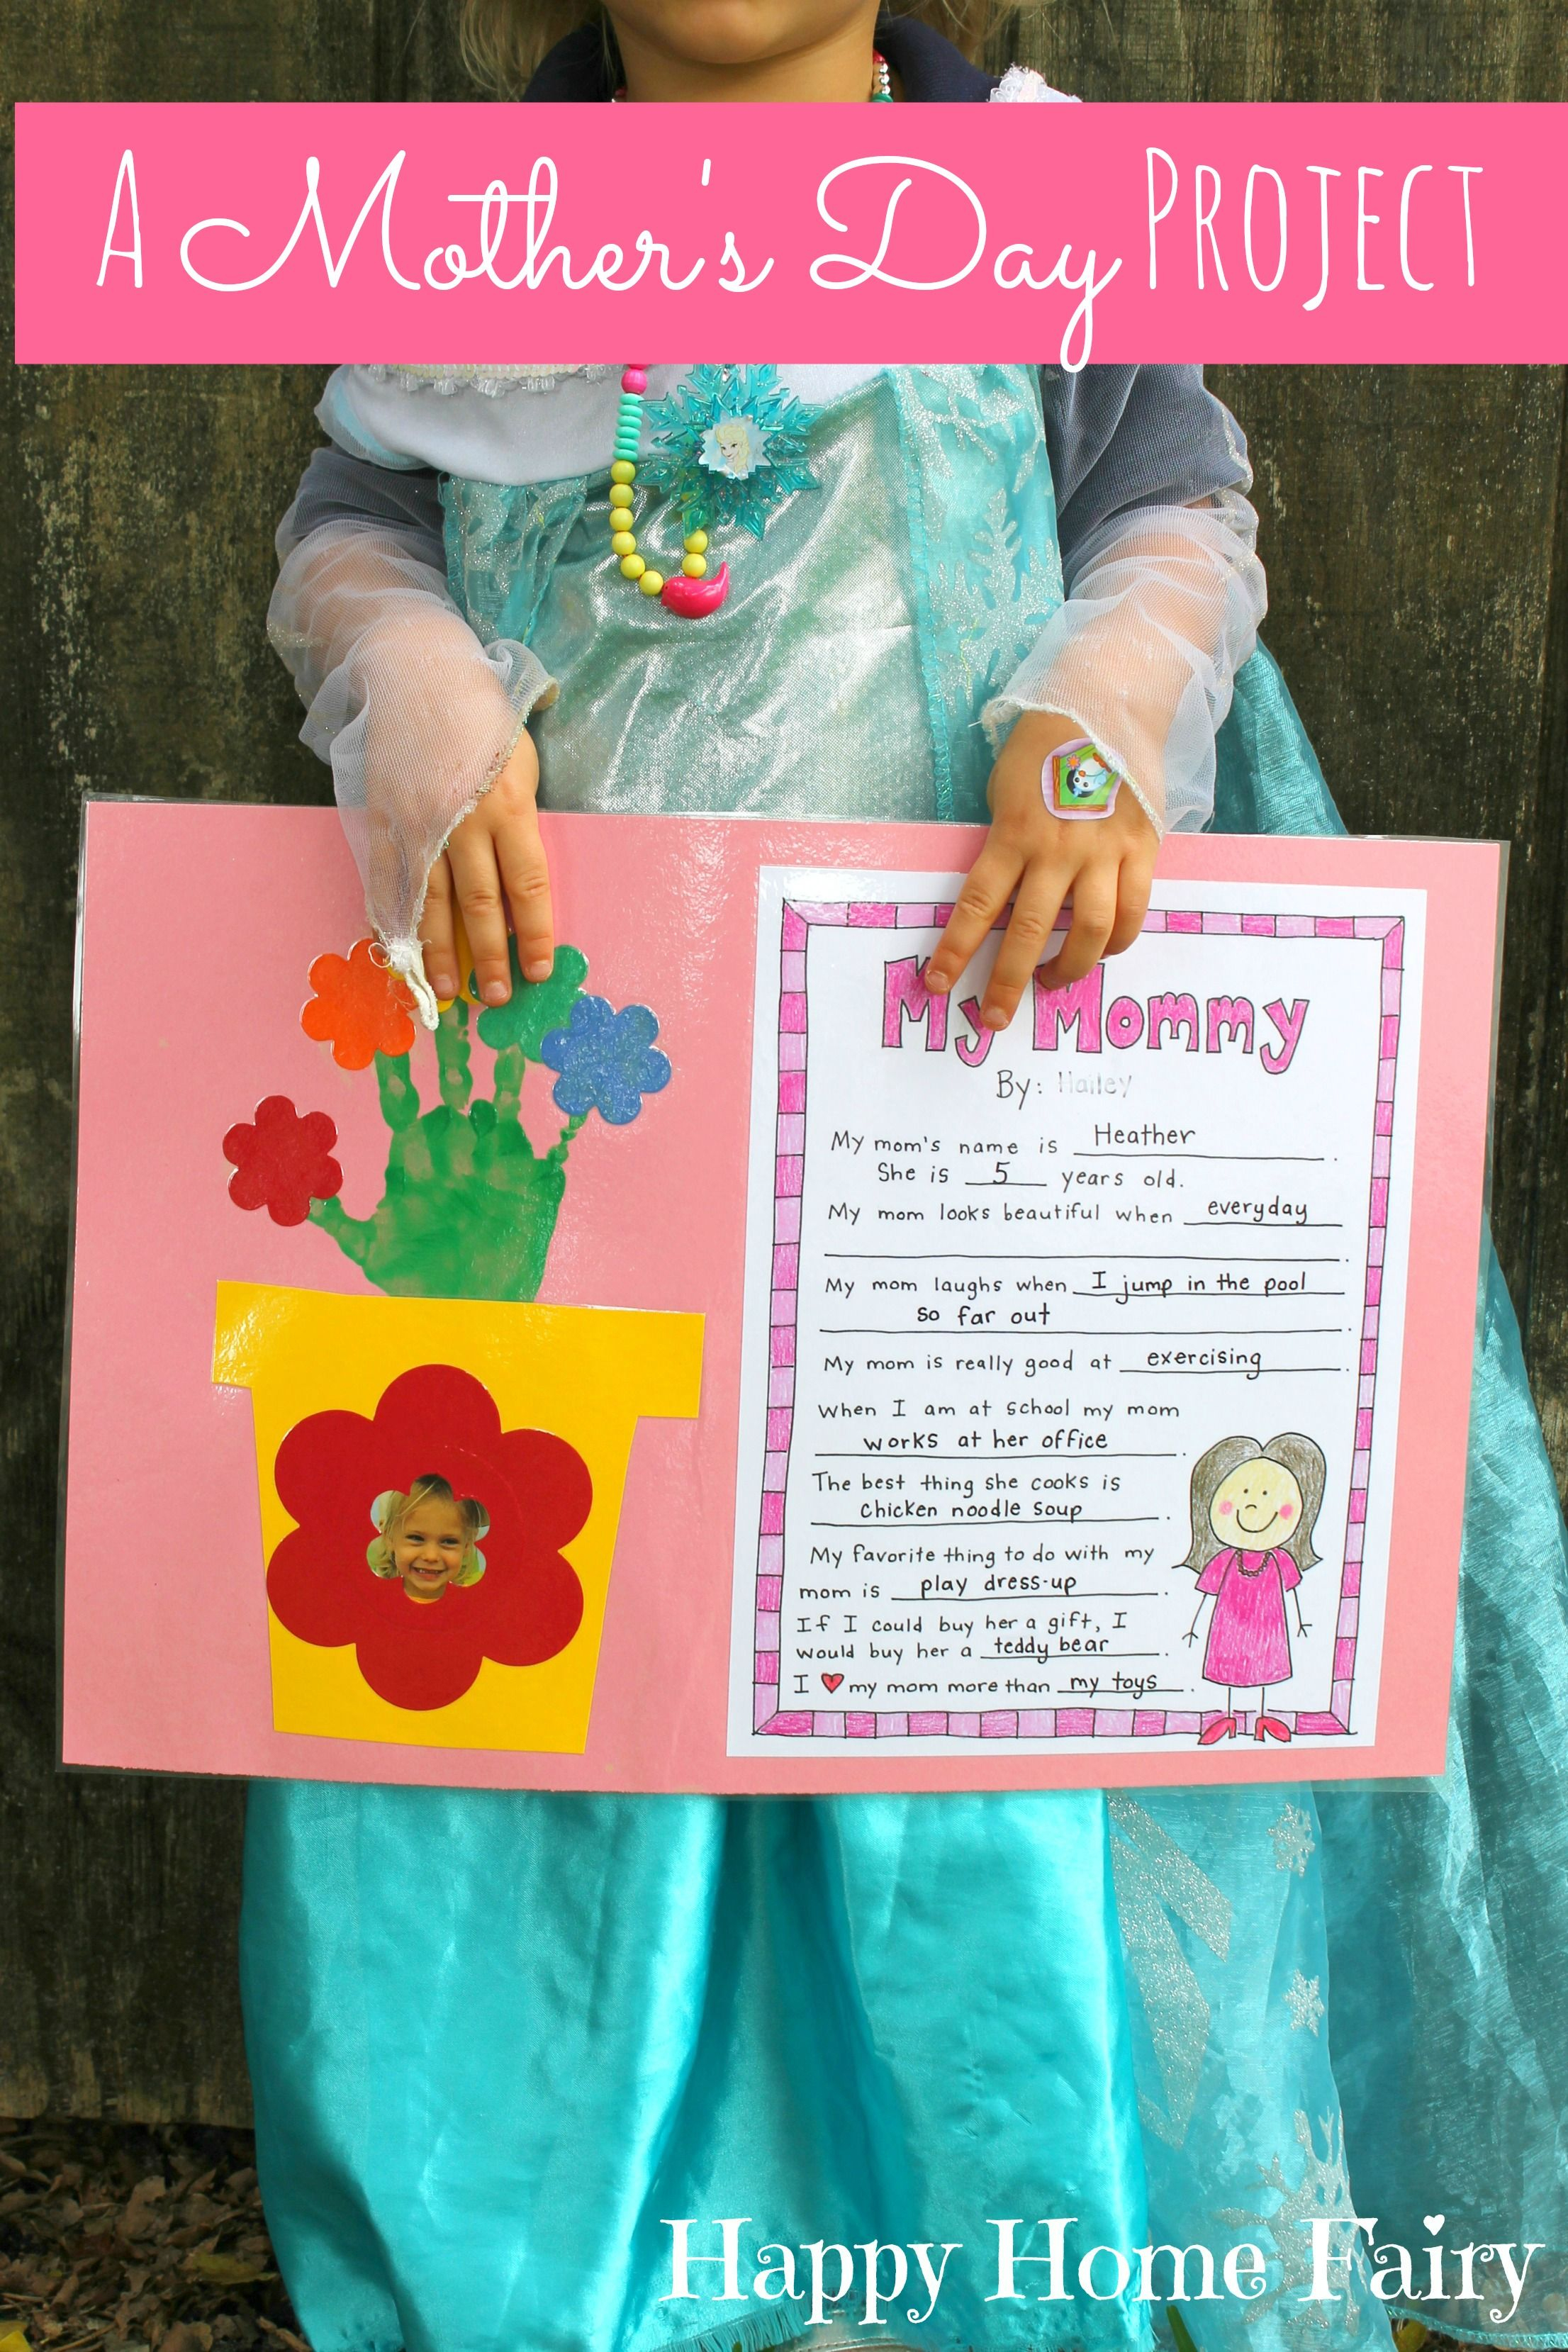 A Mother's Day Project - Free Printable | Mother's Day | Mothers Day - Free Printable Mother's Day Games